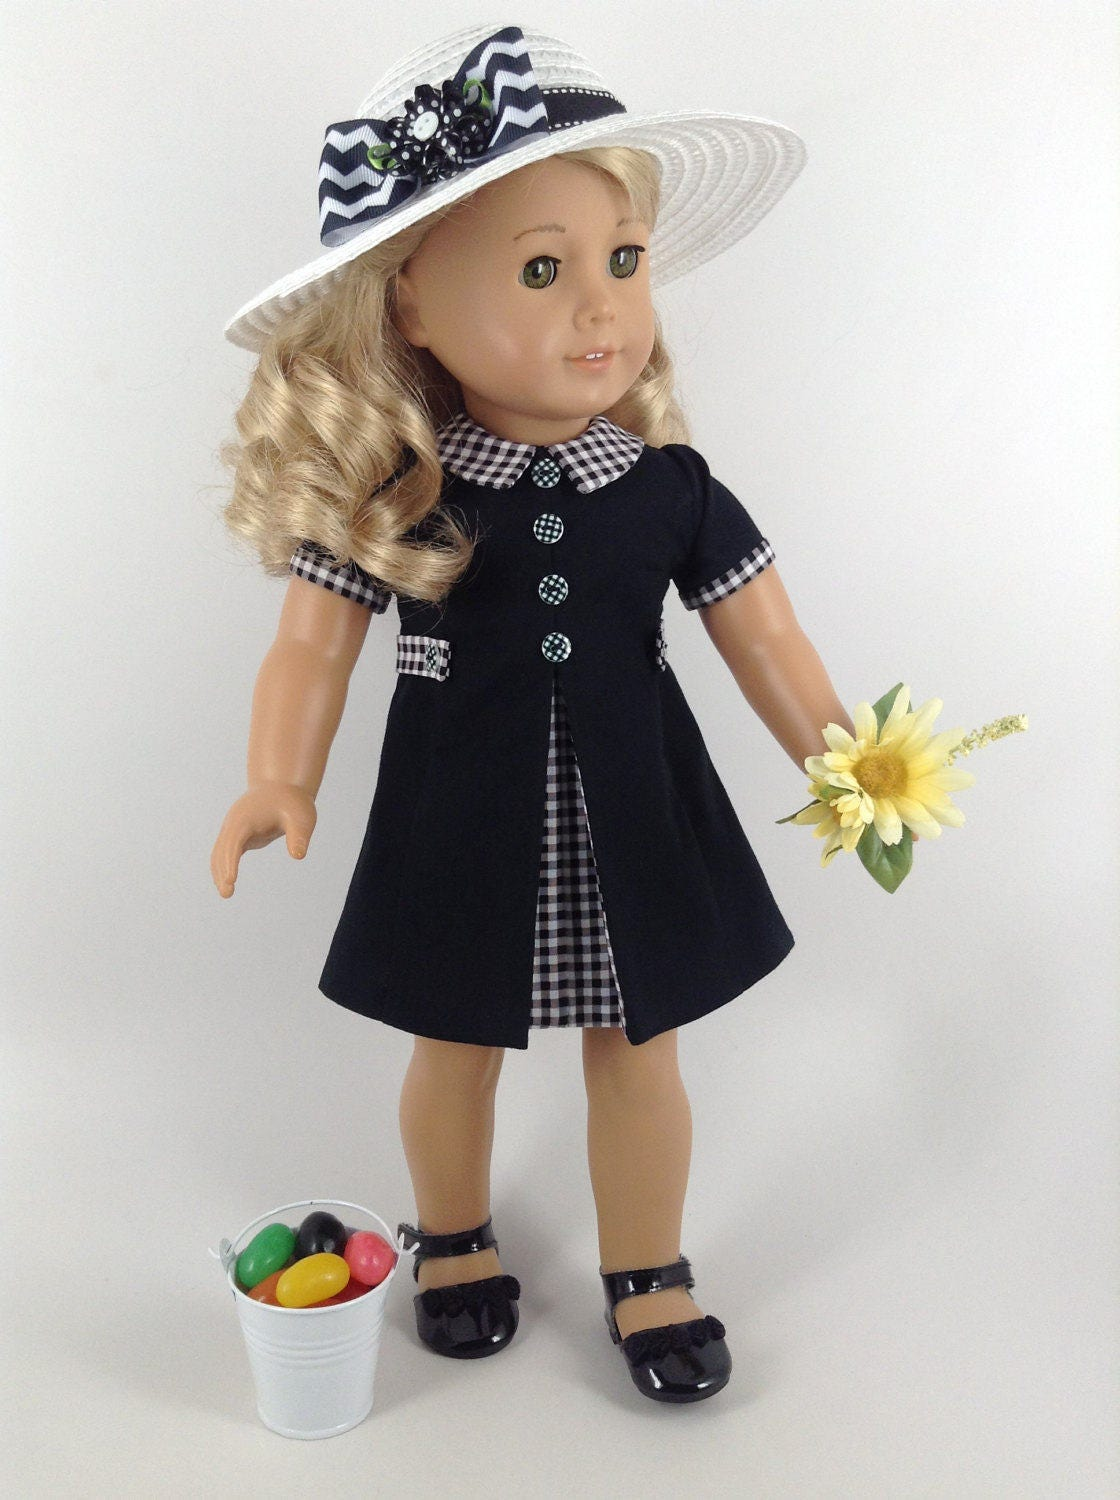 American girl 18 inch doll clothes 1960 39 s style dress for Garden tools for 18 inch doll